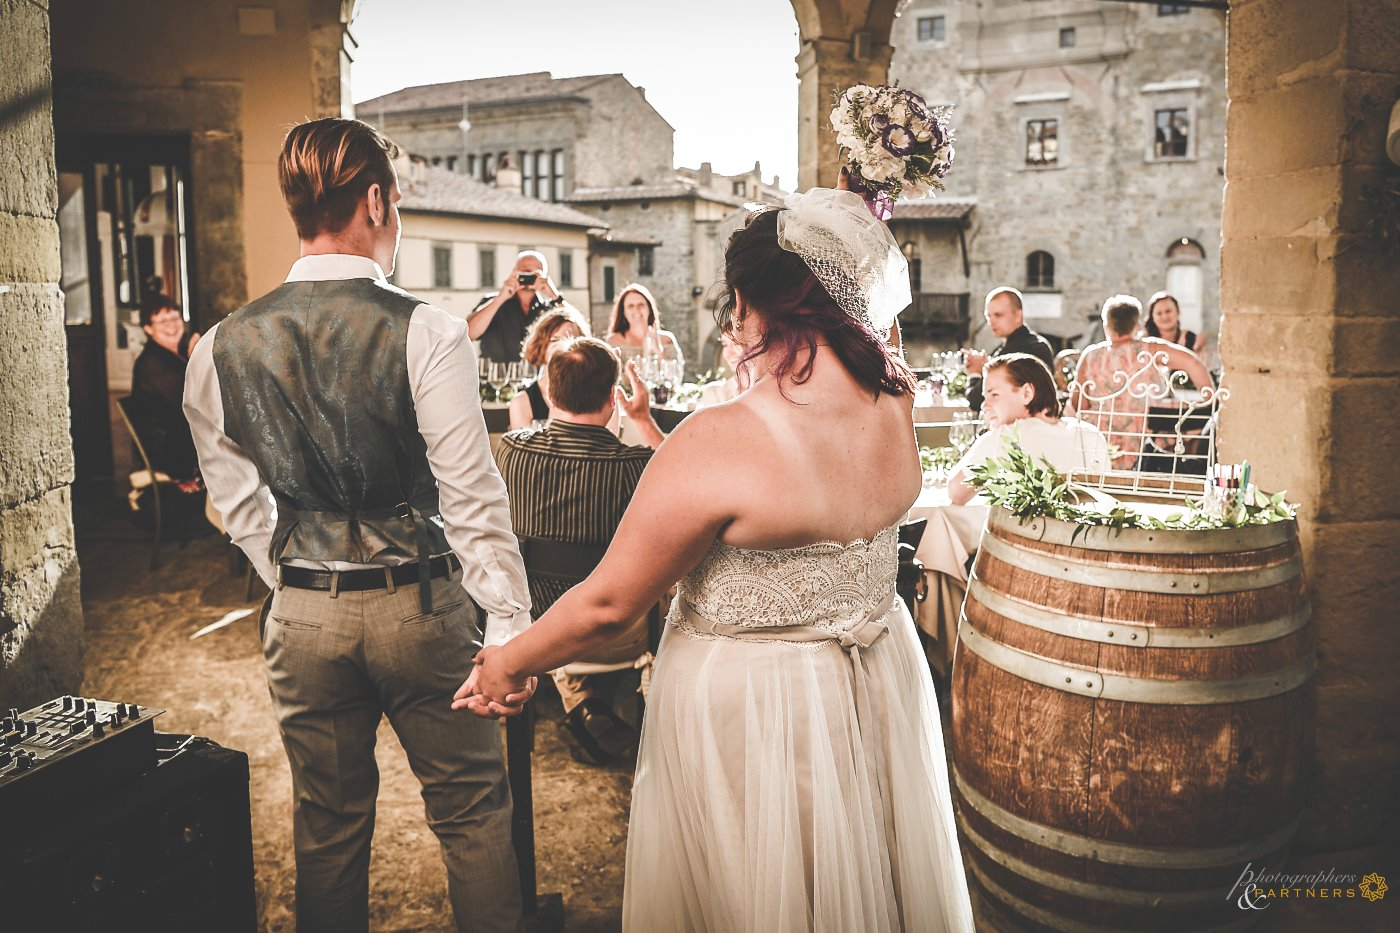 photographers_weddings_tuscany_19.jpg